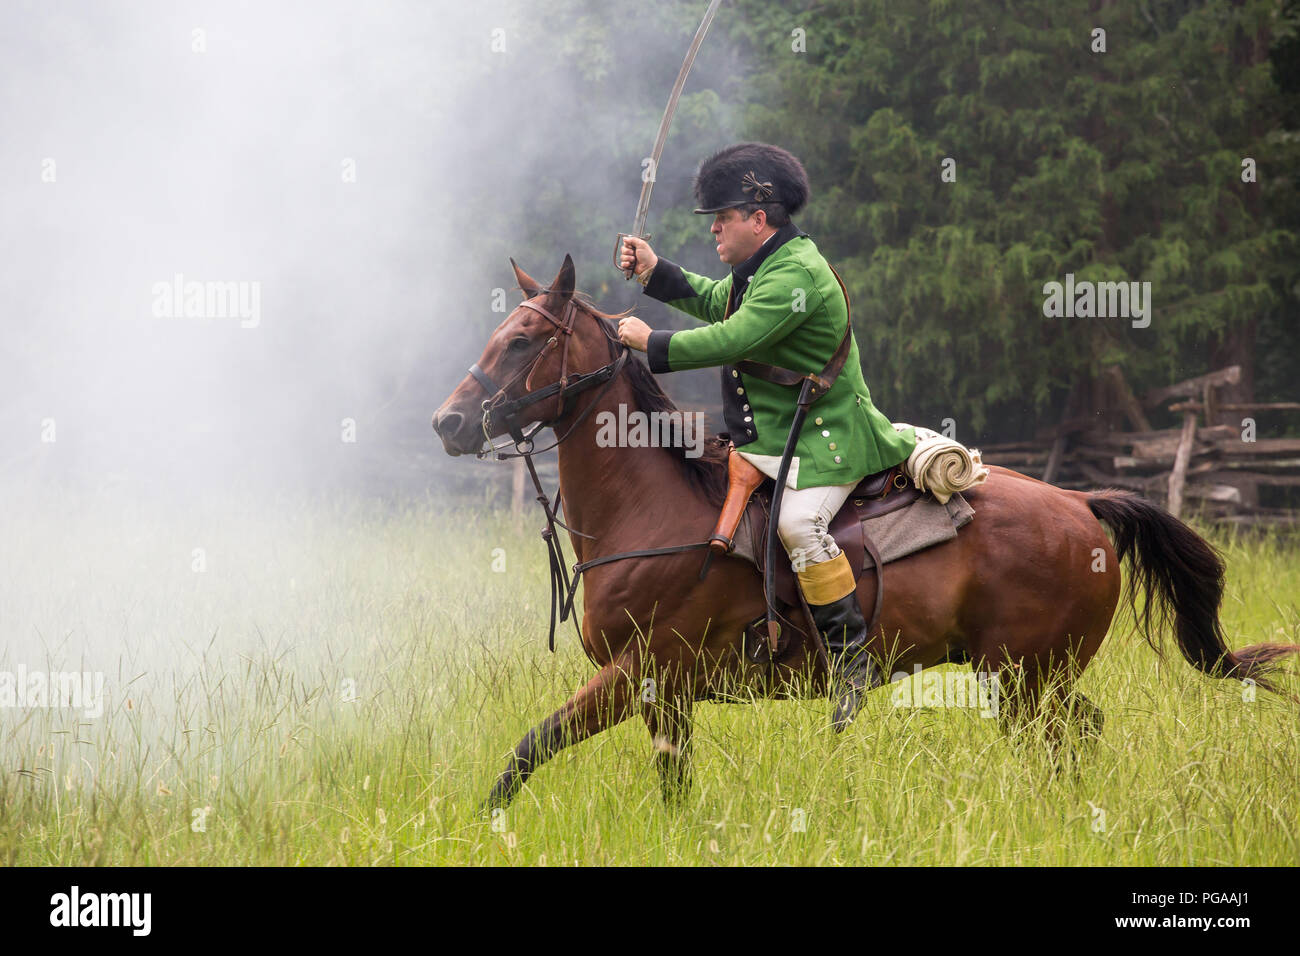 MCCONNELLS, SC (USA) - July 14, 2018:  Revolutionary War reenactors in British uniforms recreate the Battle of Huck's Defeat at Historic Brattonsville - Stock Image